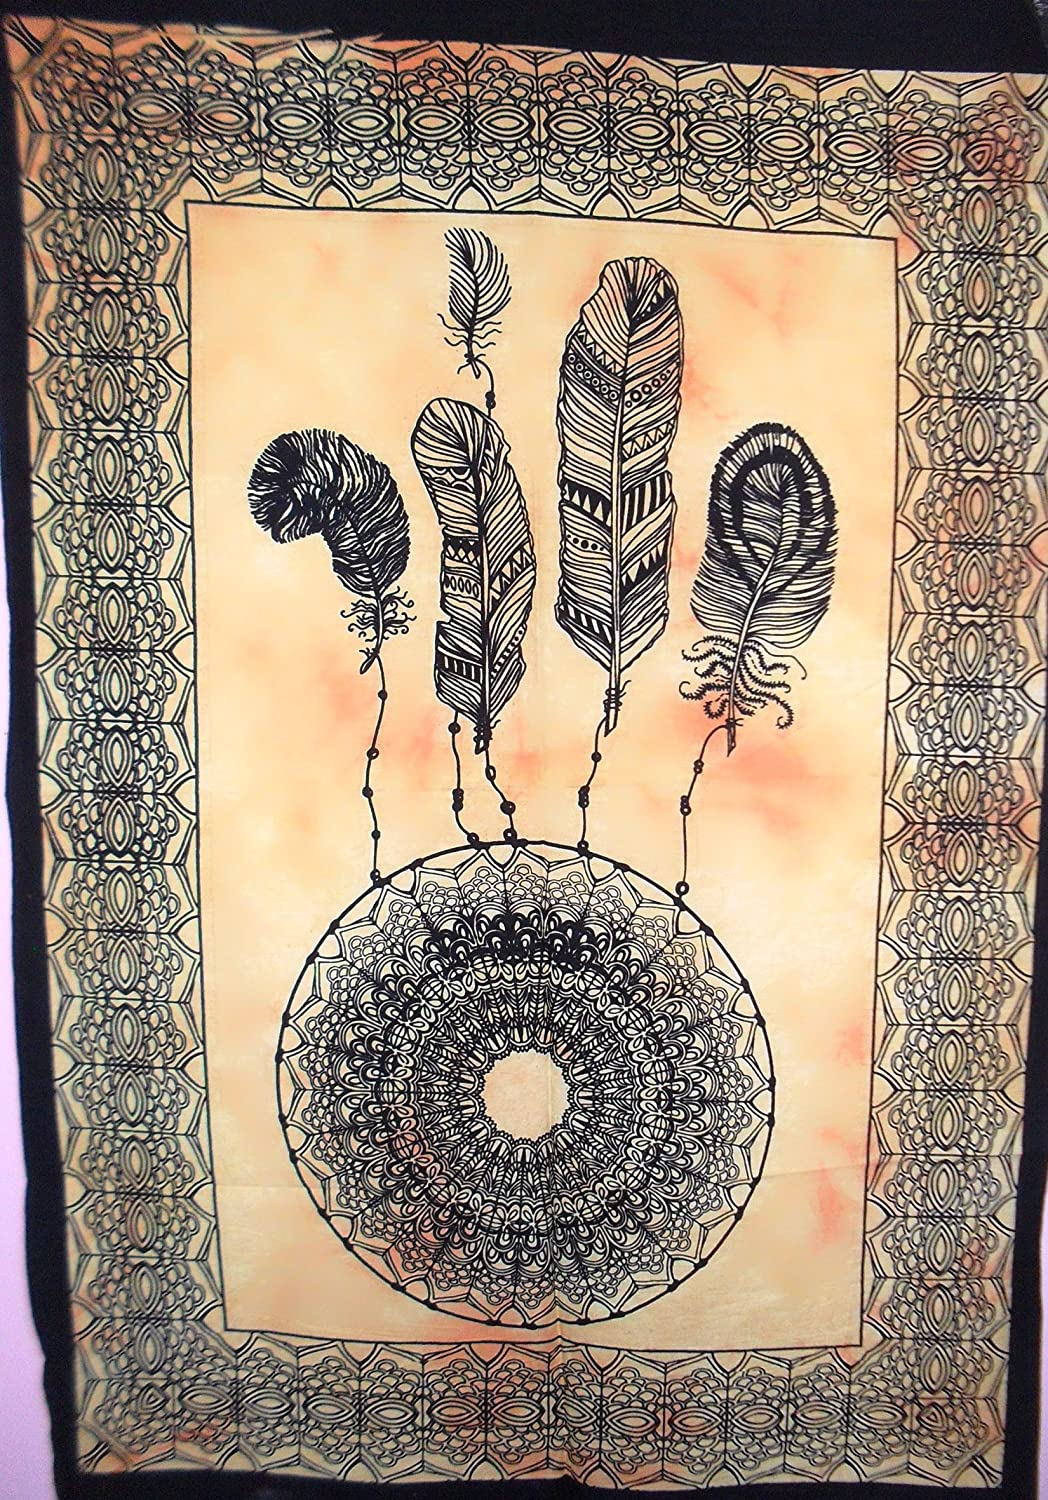 Amazon.com: Traditional Jaipur Tie Dye Dreamcatcher Poster, Indian ...